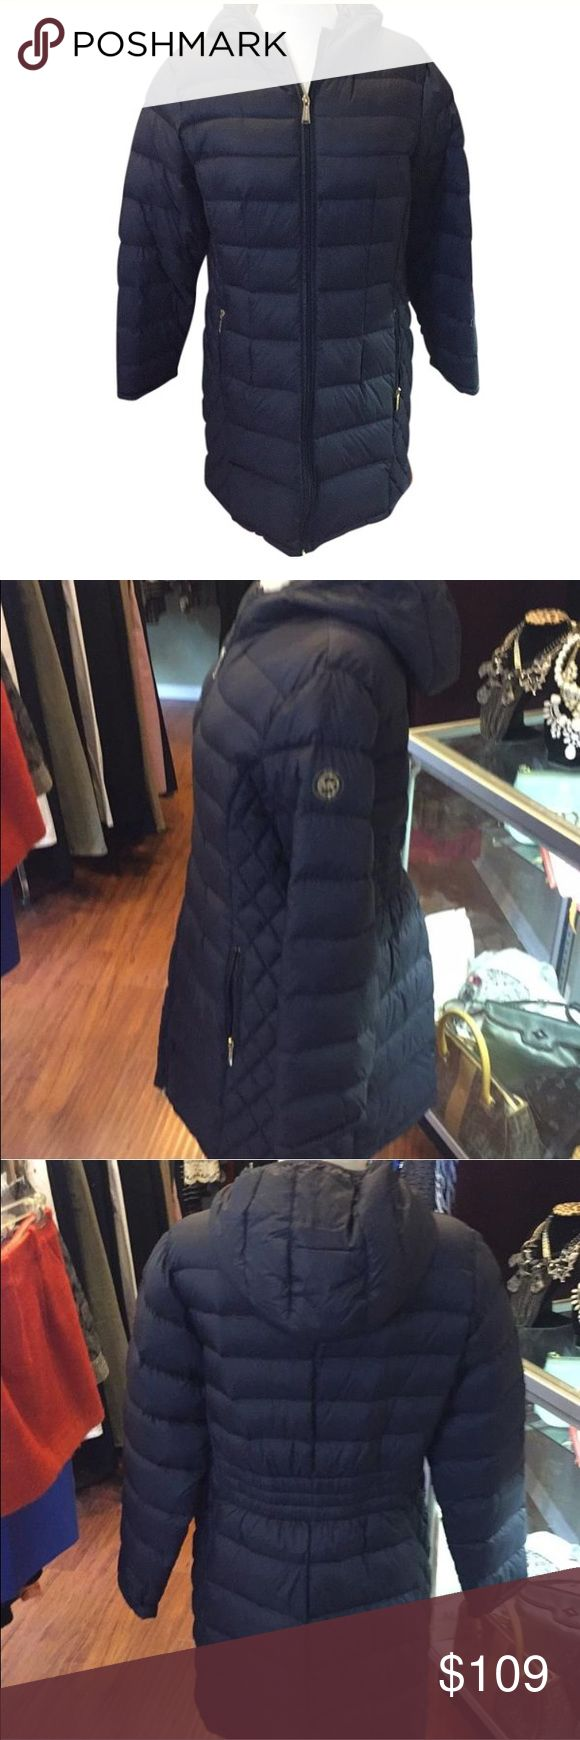 Michael kors packable down quilted puffer coat ⬇️ Excellent condition. No PayPal or trades. Reasonable offers accepted via offer option only. Location : Pompton Lakes, NJ Michael Kors Jackets & Coats